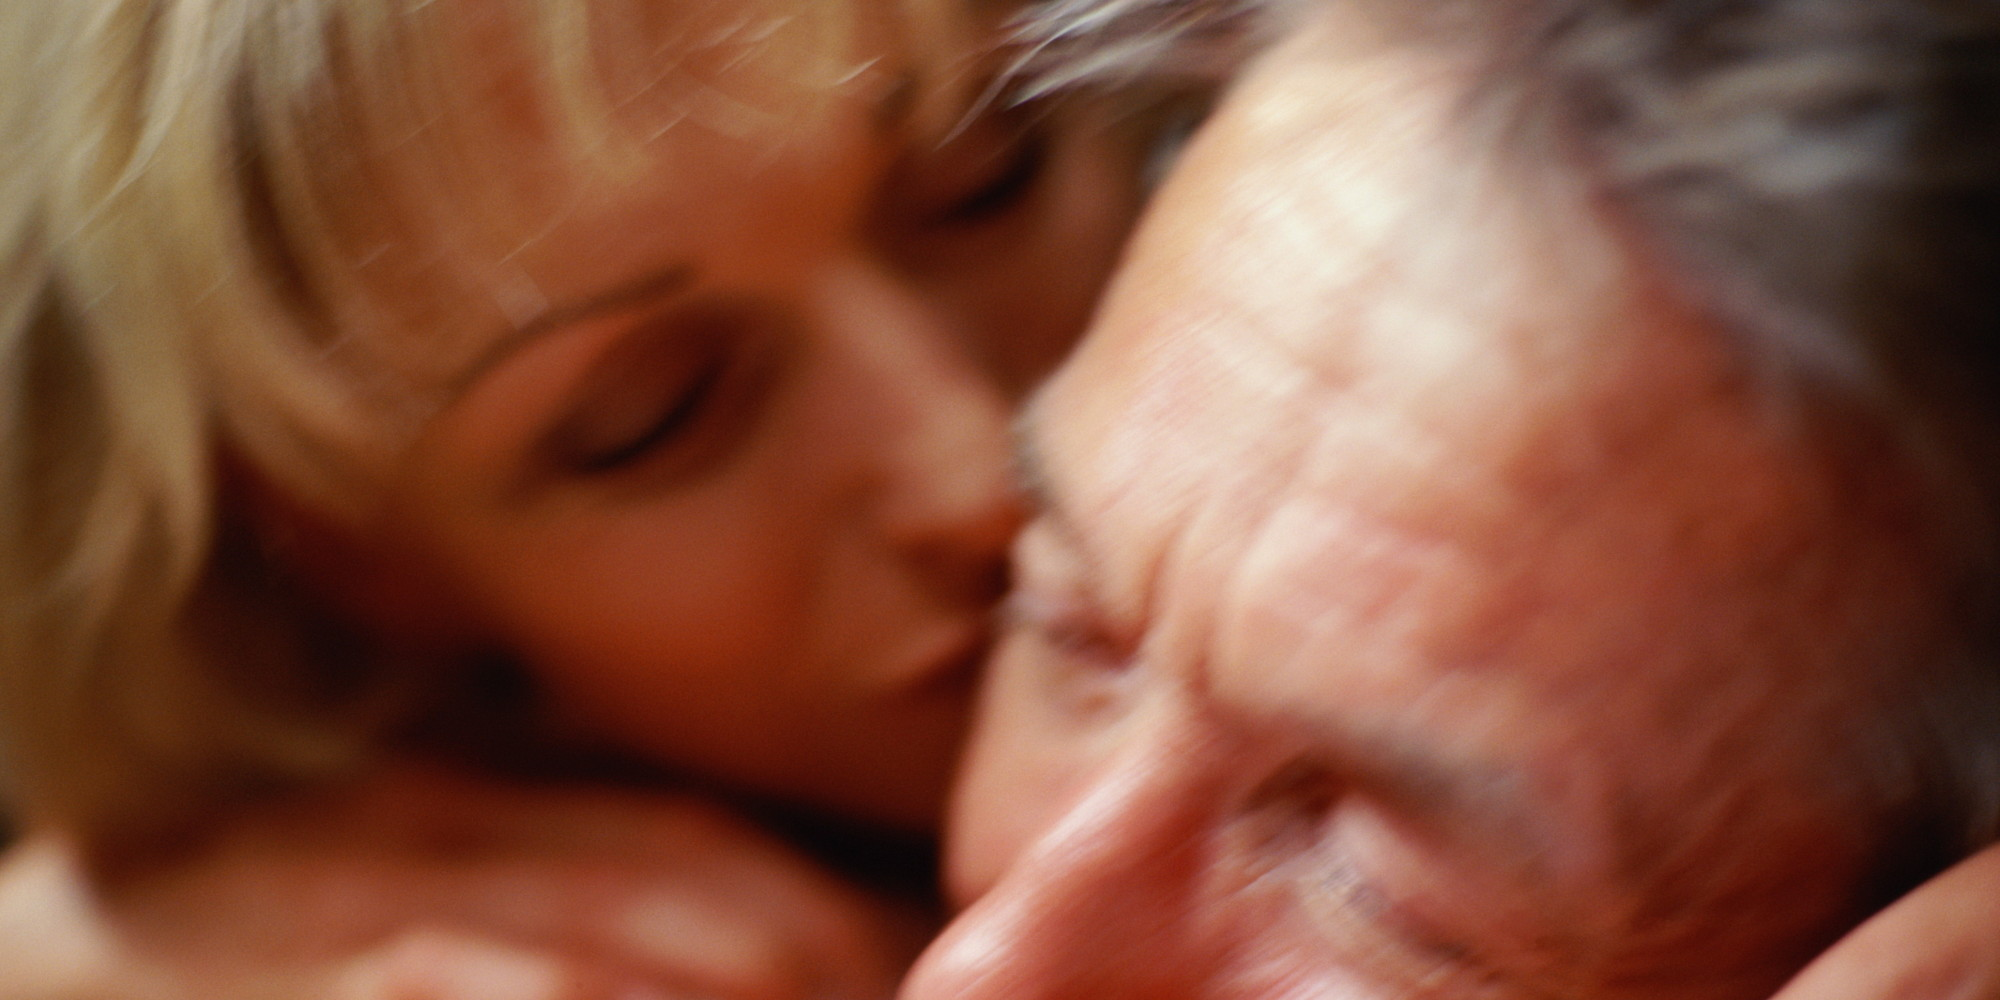 Mature women making love